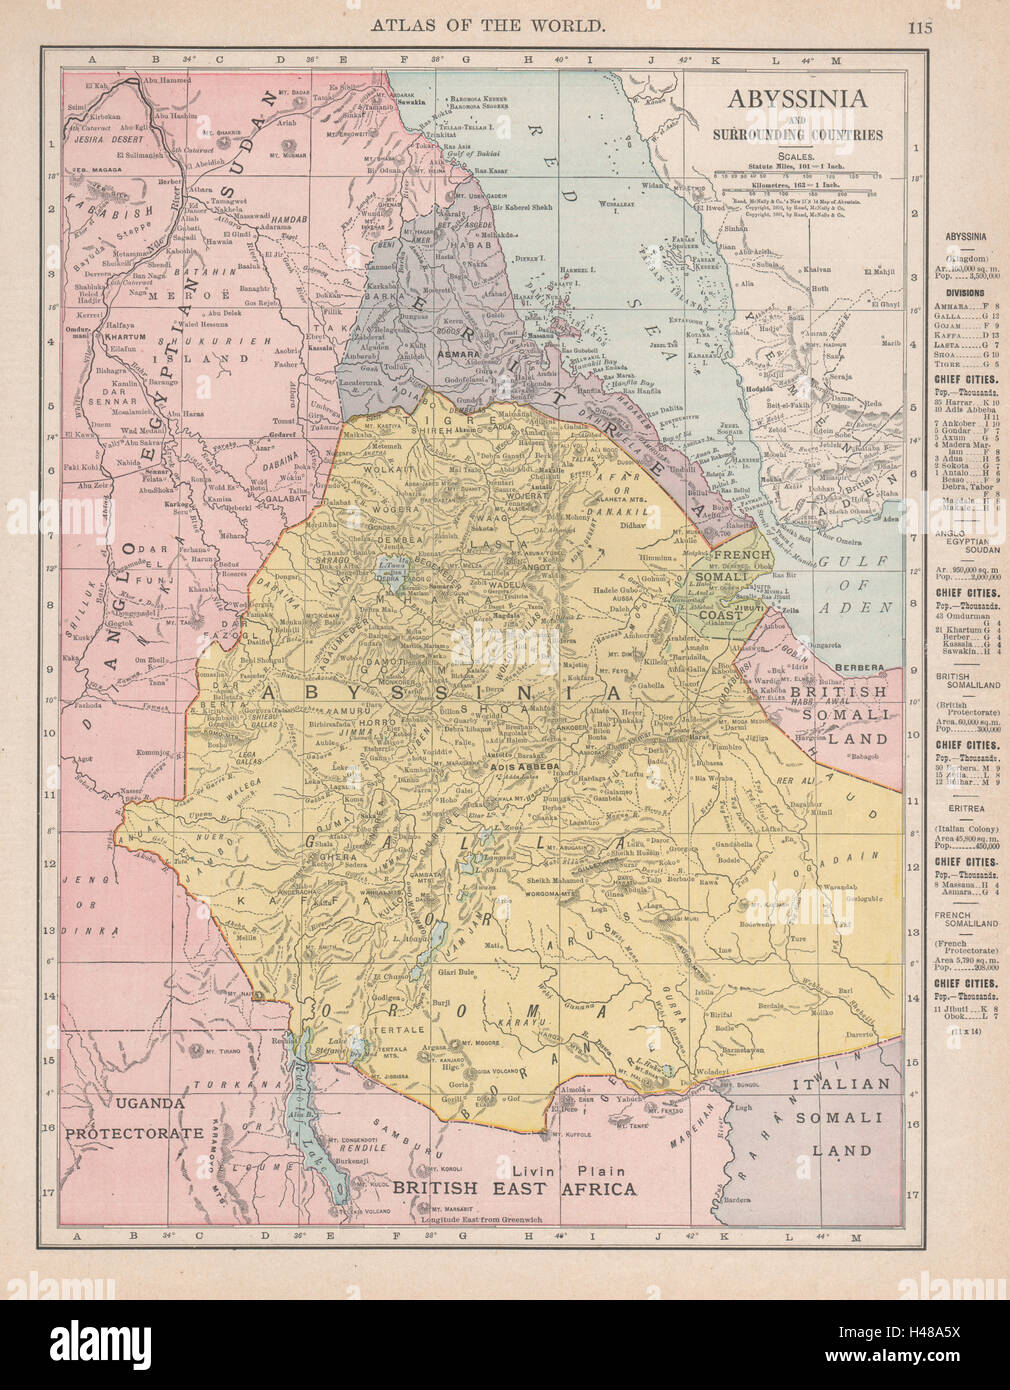 Abyssinia eritrea french somali coast djibouti ethiopia rand stock abyssinia eritrea french somali coast djibouti ethiopia rand mcnally 1912 map gumiabroncs Images